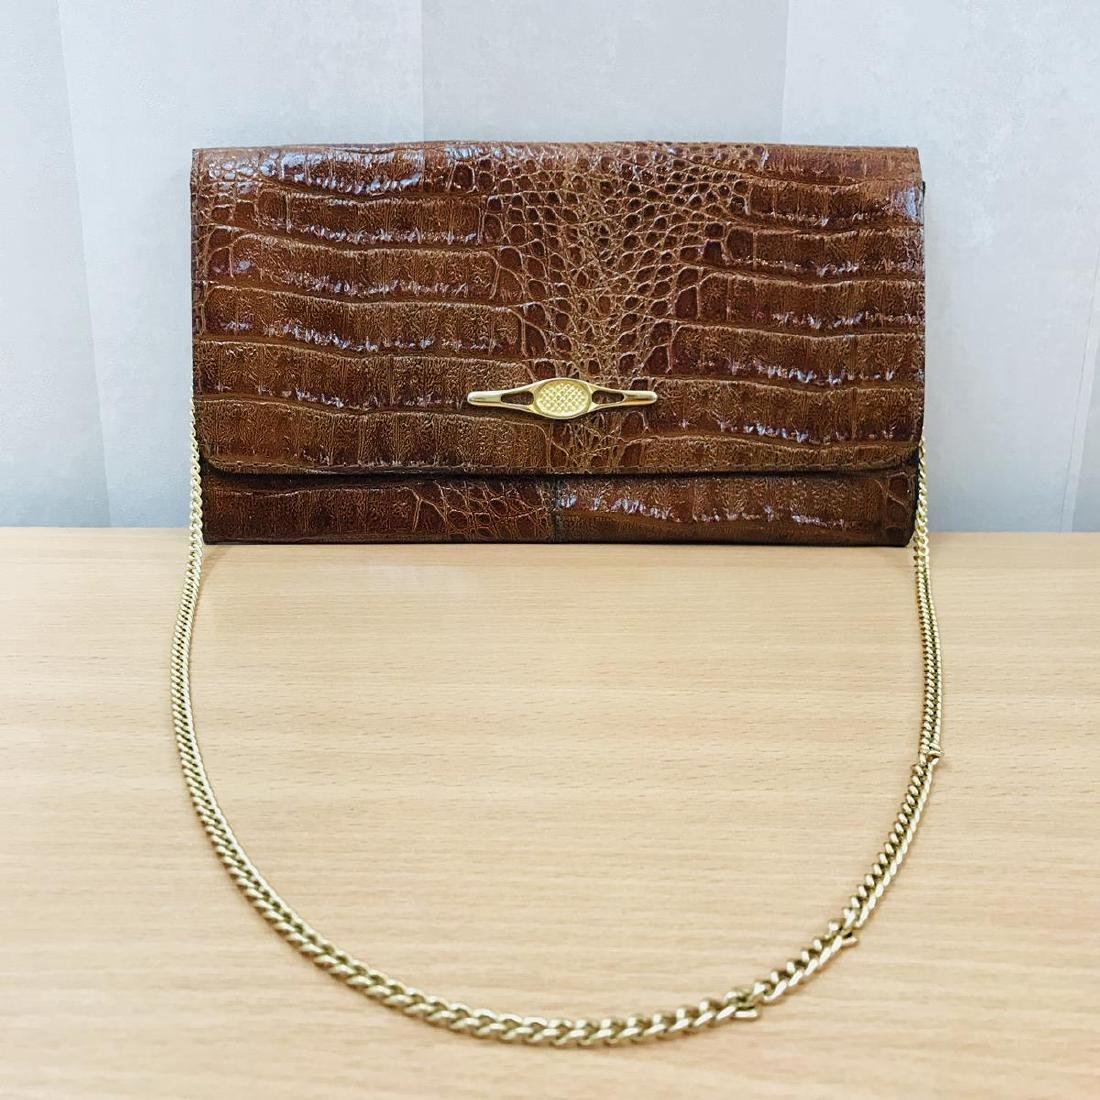 Vintage Crocodile Leather Clutch Bag - 2